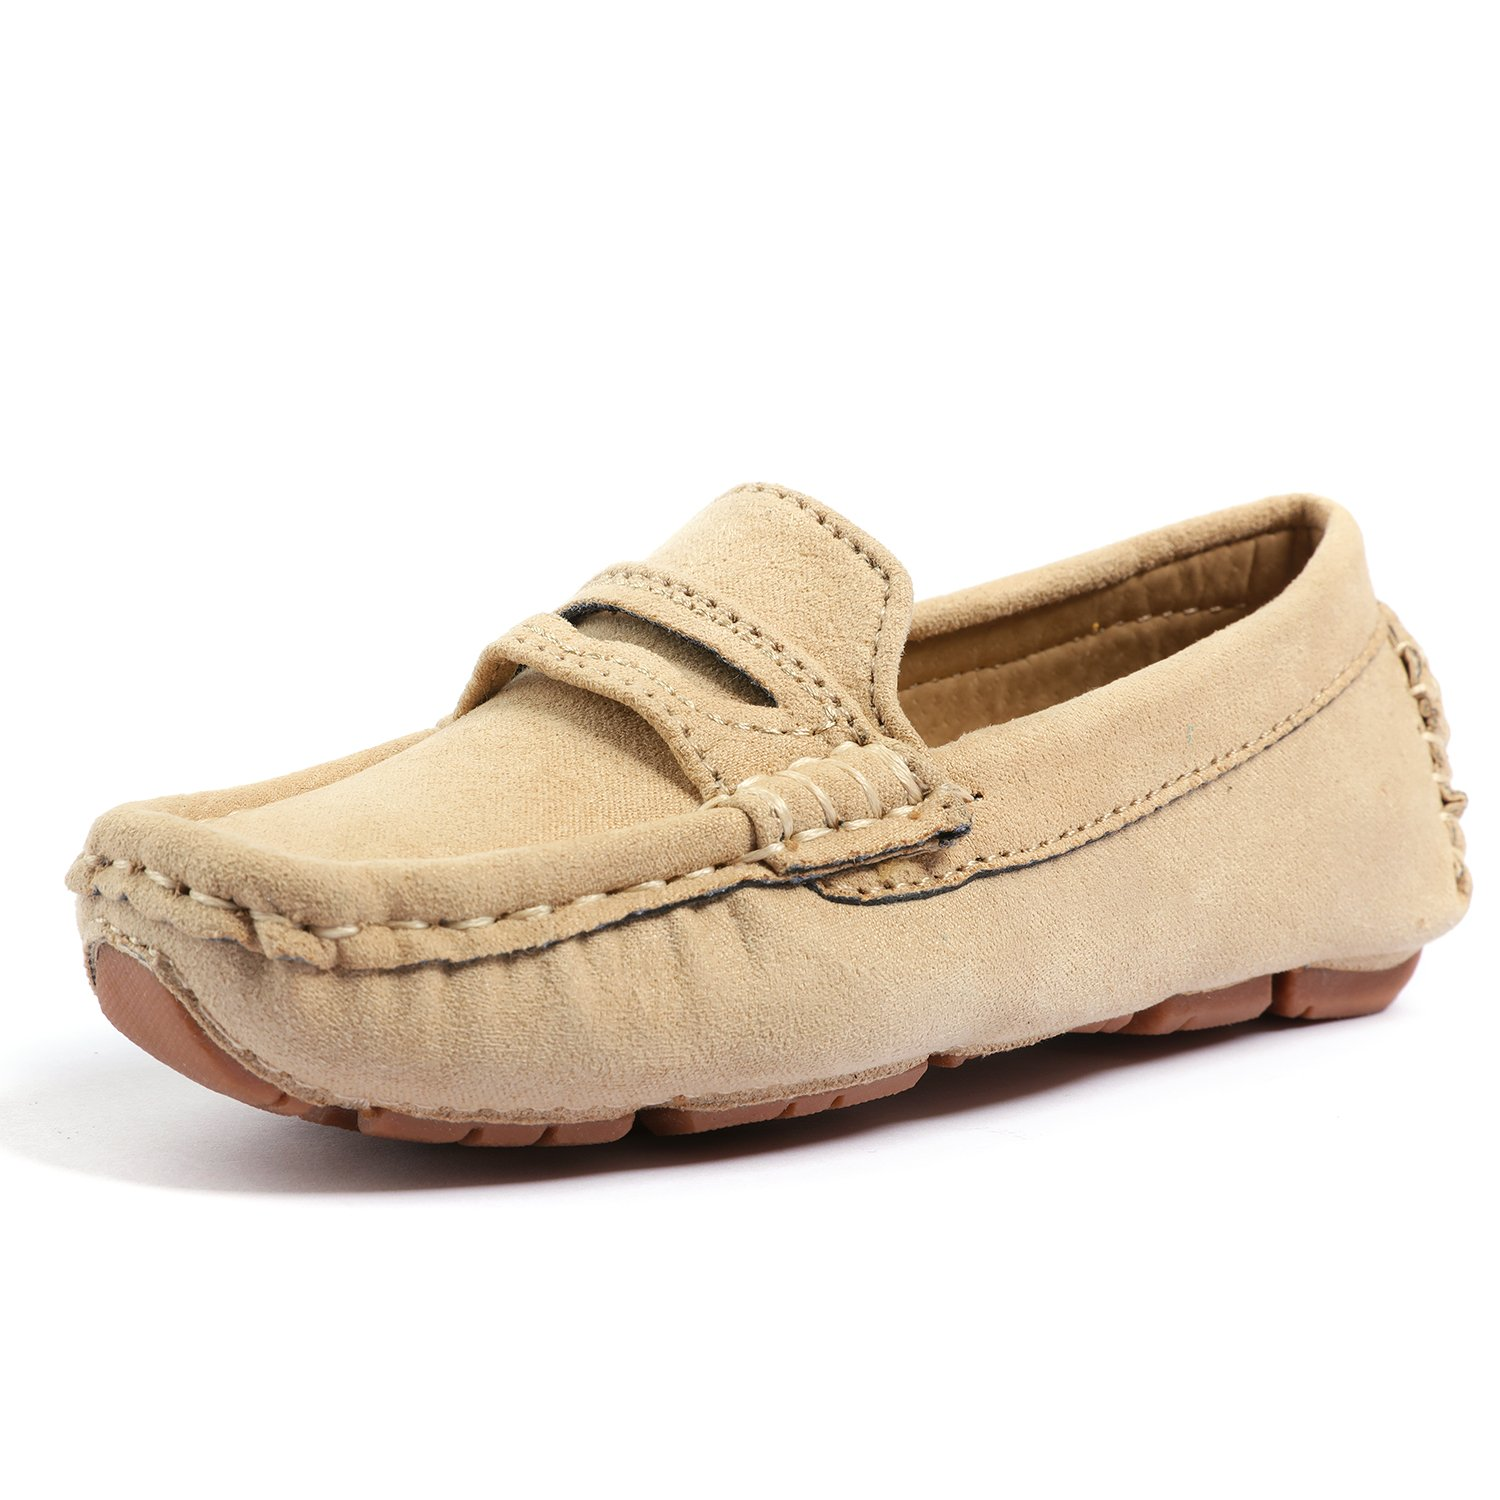 UBELLA Girl's Boy's Slip-On Loafers Casual Flat Shoes(Toddler/Little Kid/Big Kid)